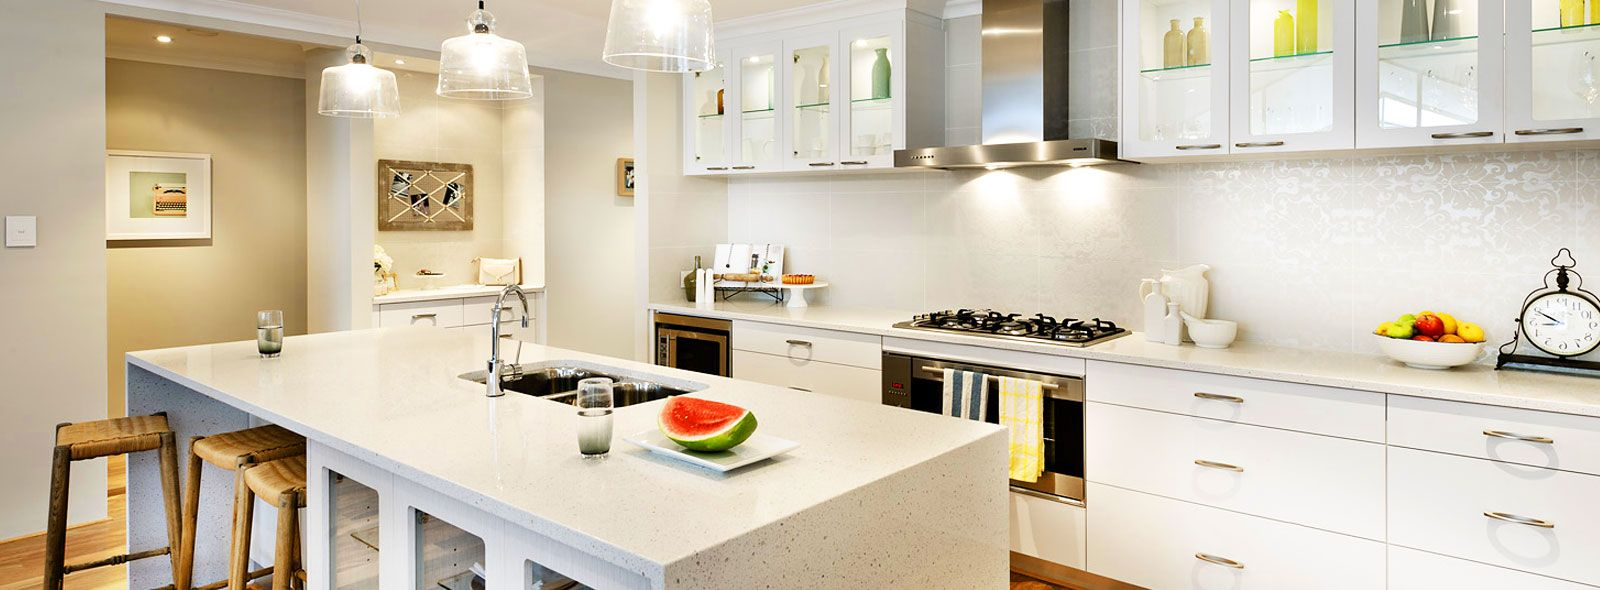 Kitchen Remodelers San Jose #kitchen #Remodelers #SanJose | Kitchen ...